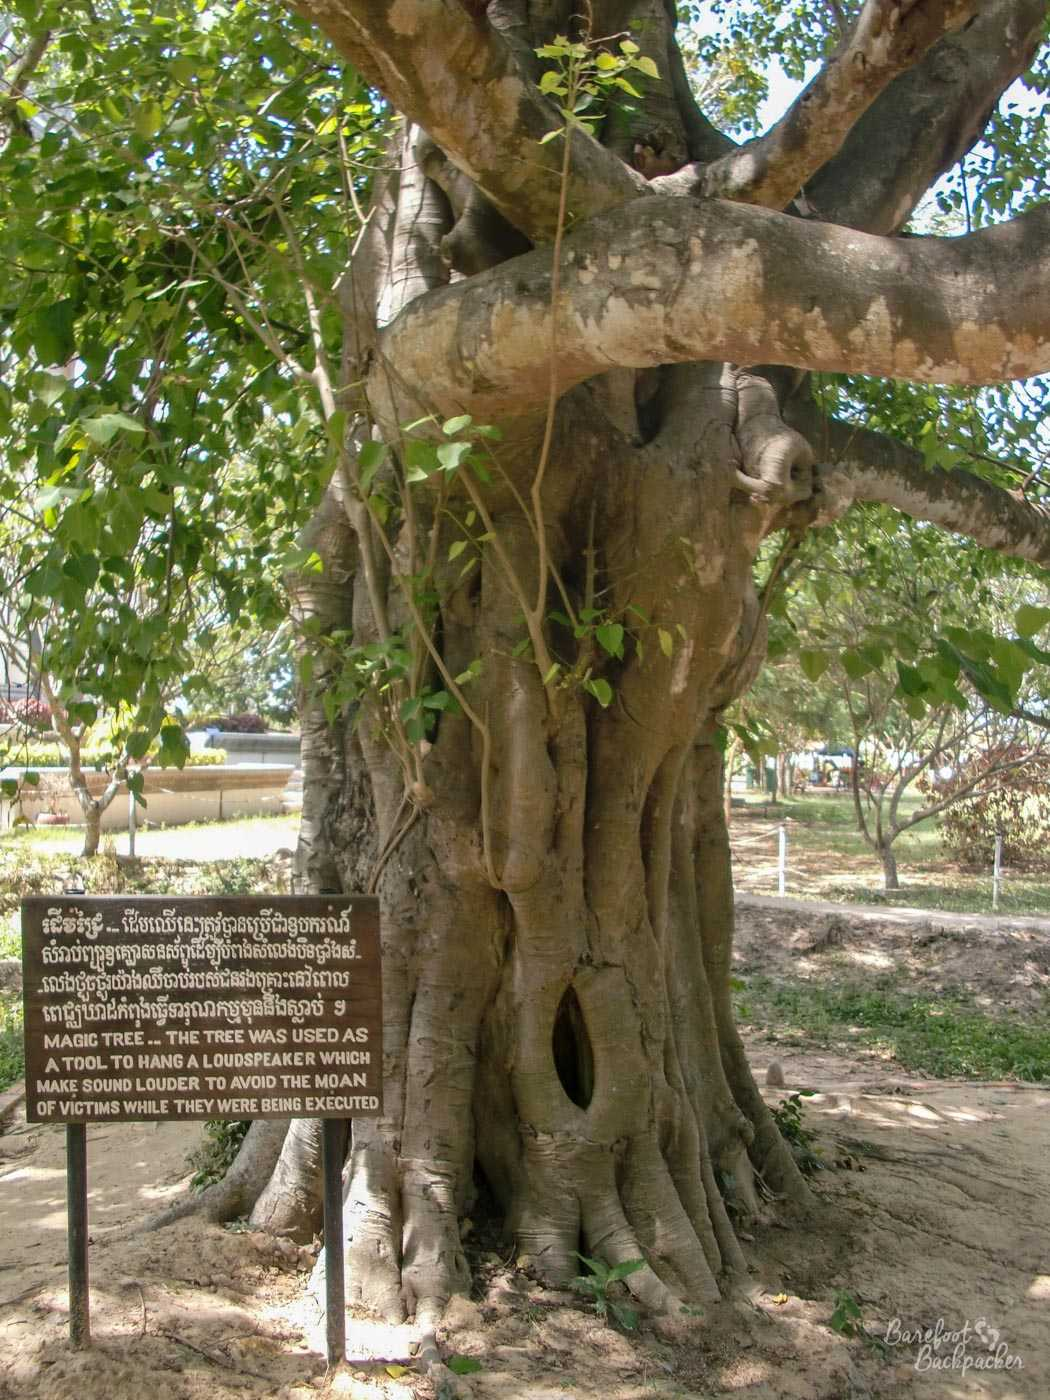 A large tree with a thick trunk, and lots of leaves and equally thick branches coming off in multiple. By the side of the tree is a sign that says 'Magic tree … the tree was used as a tool to hang a loudspeaker which make (sic) sound louder to avoid the moan of victims while they were being executed'.